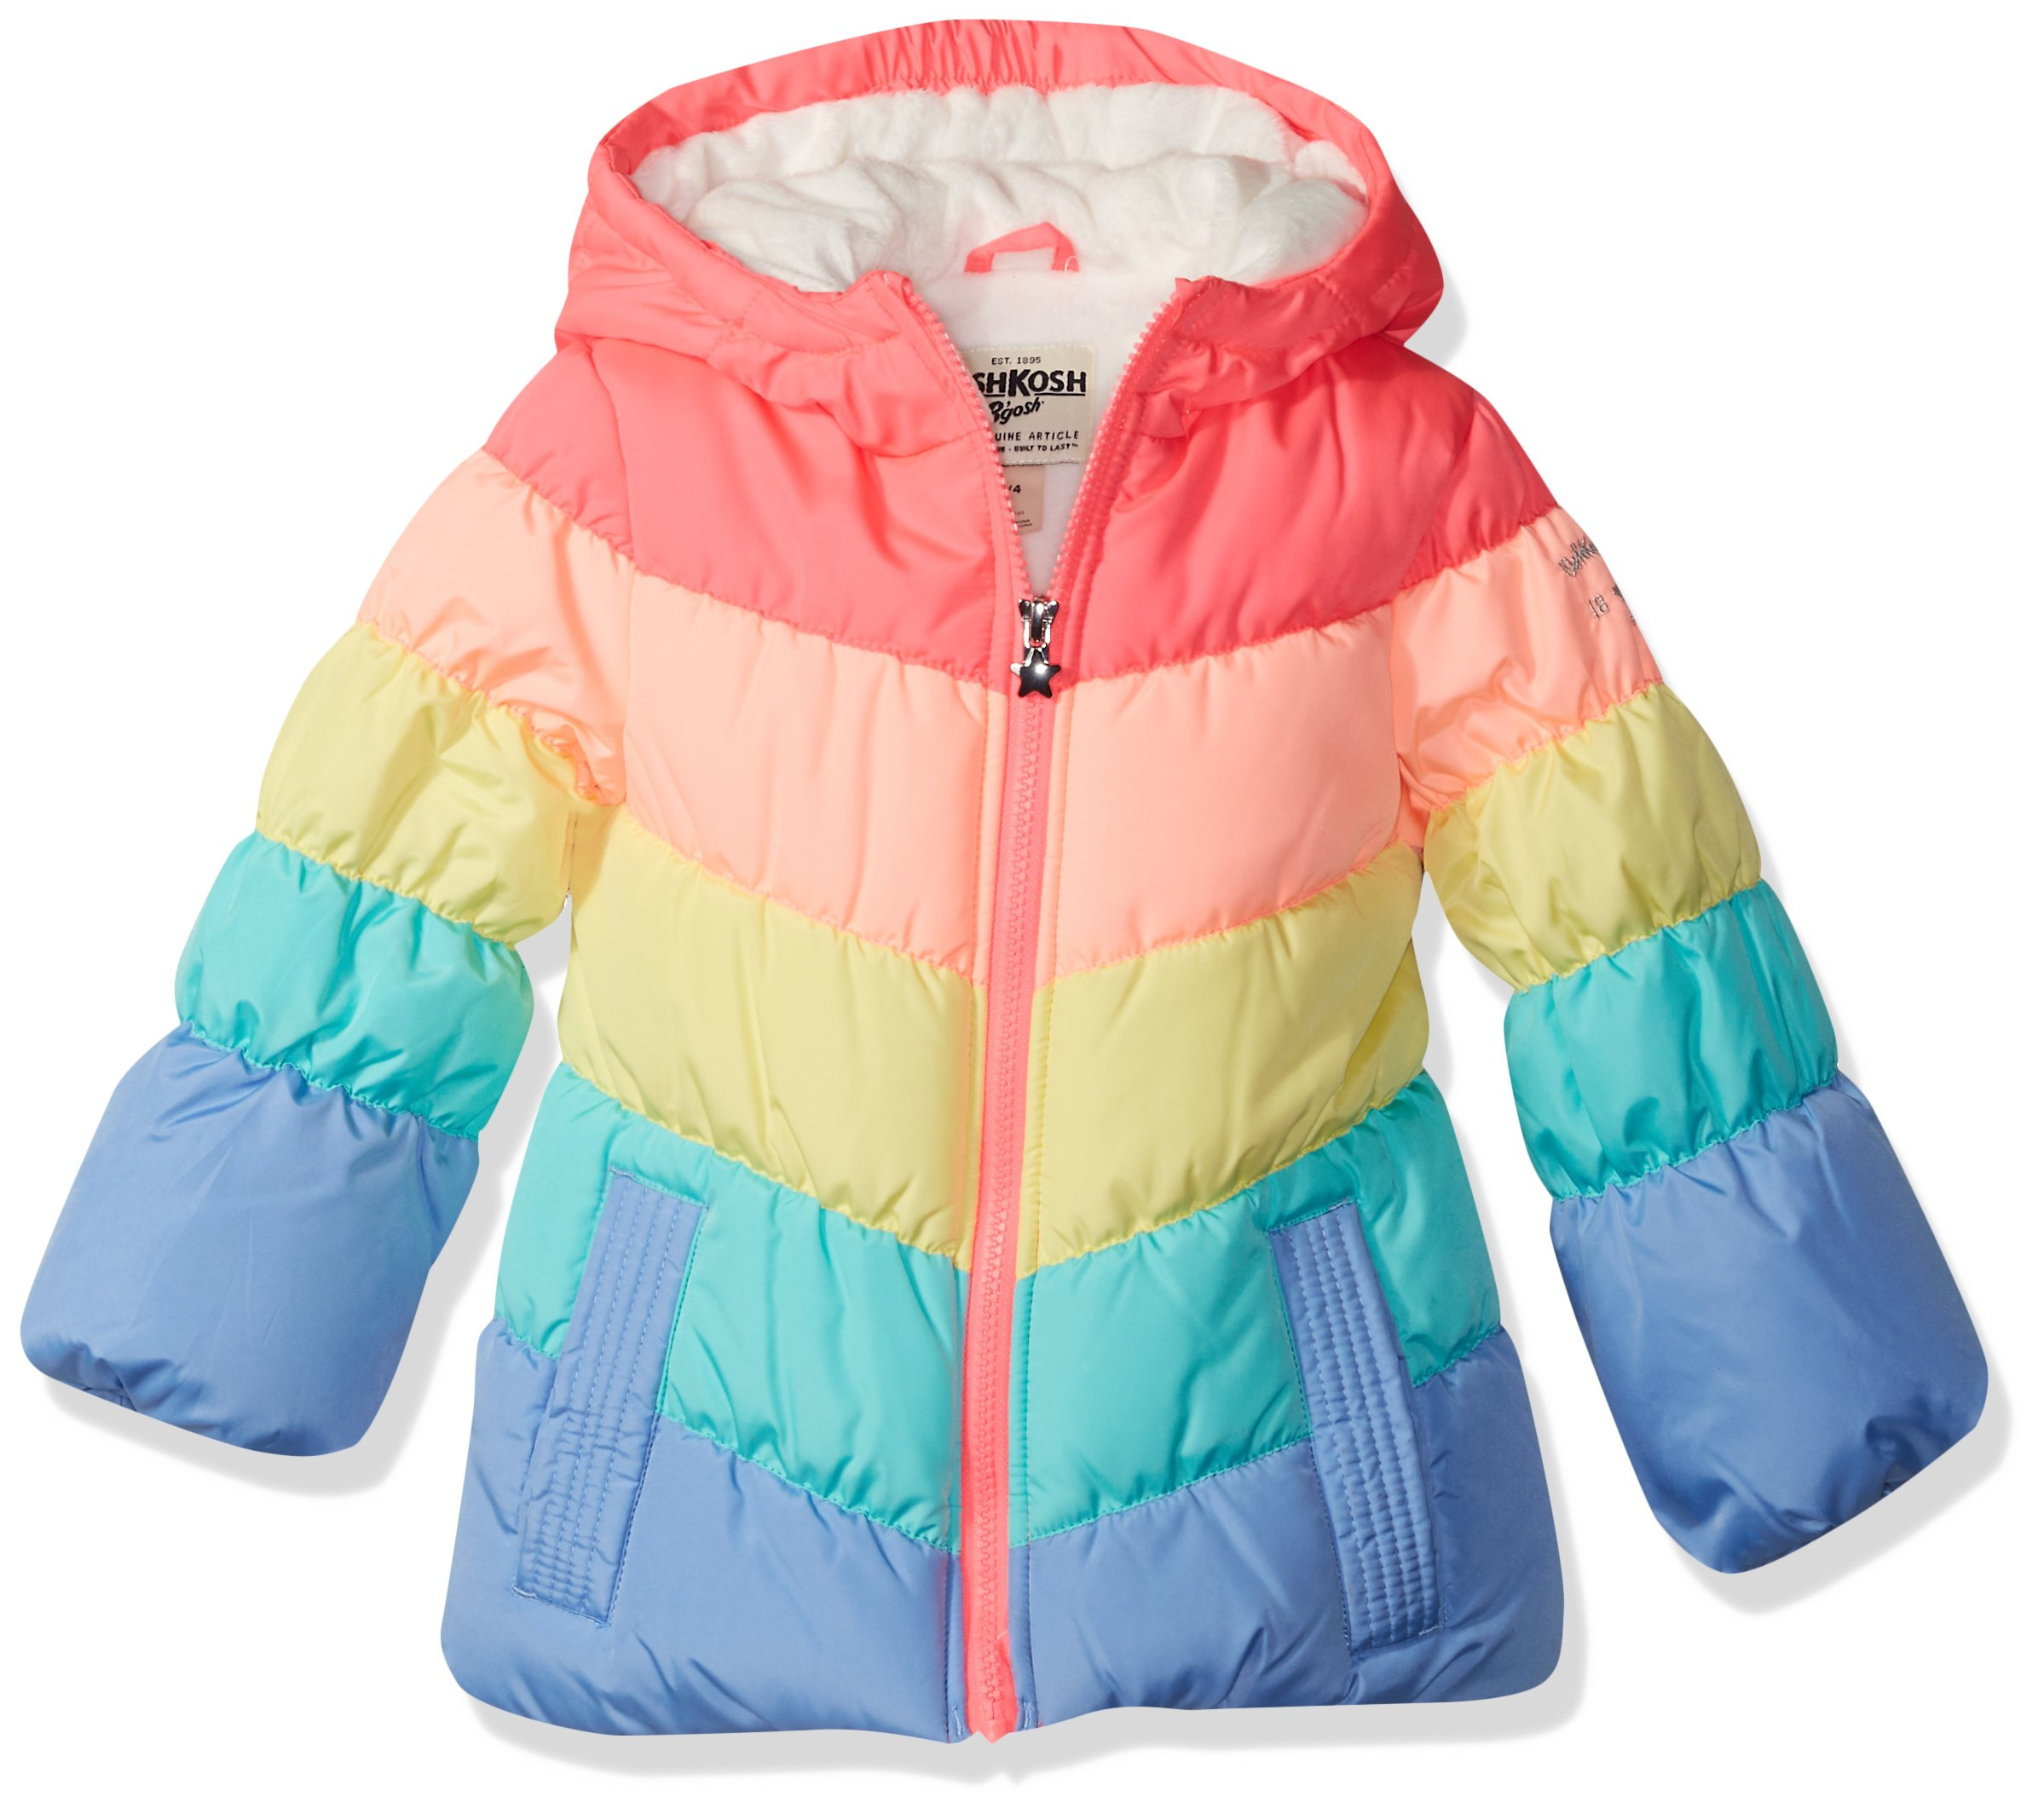 Osh Kosh Baby Girls Perfect Colorblocked Heavyweight Jacket Coat, Rainbow, 18M by OshKosh B'Gosh